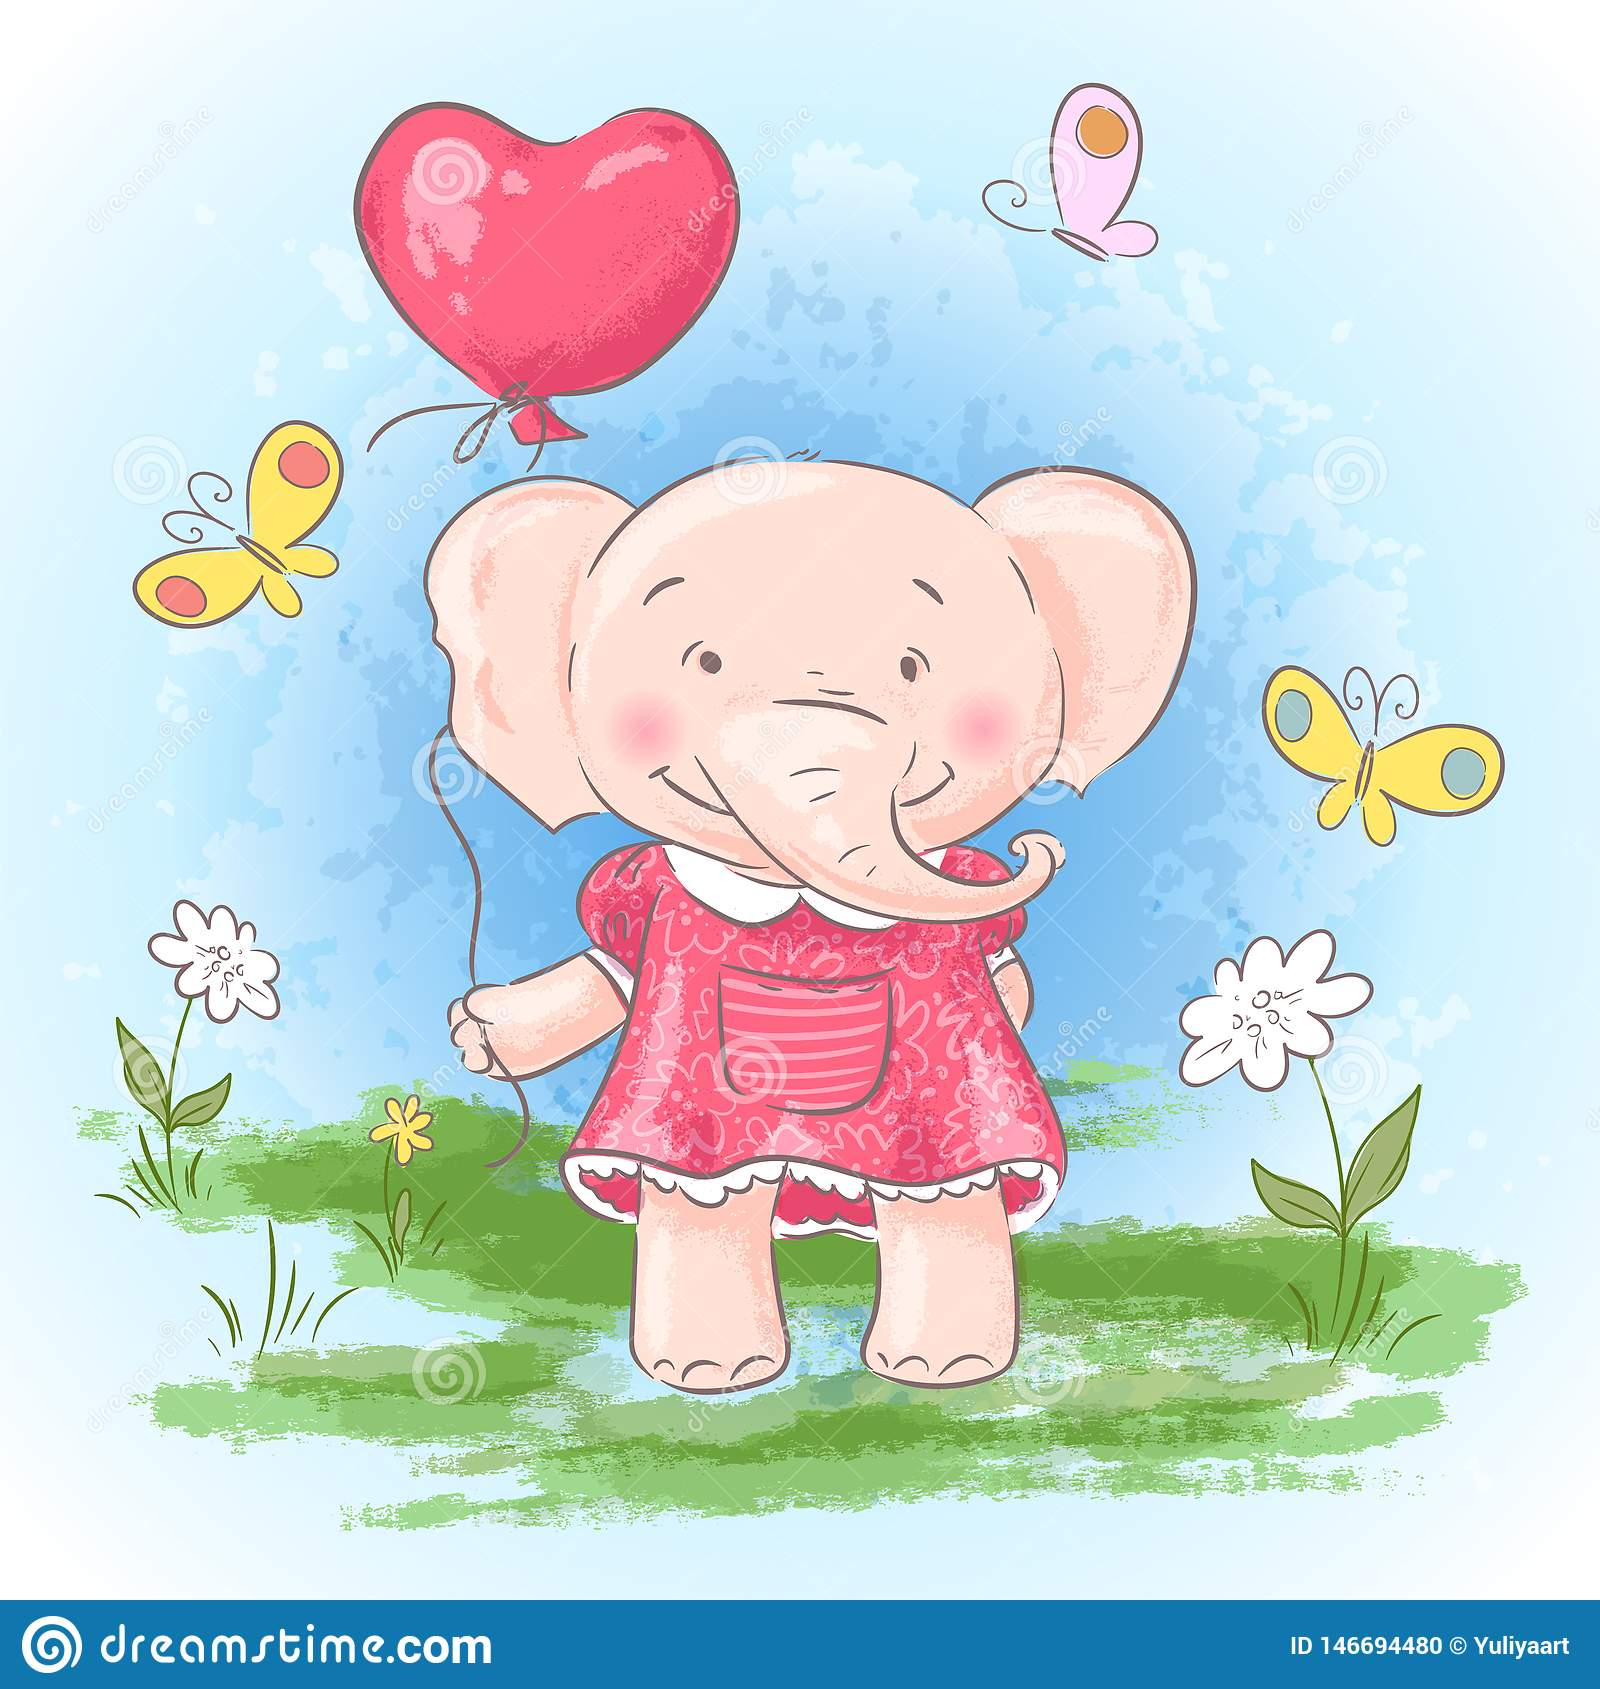 Illustration postcard cute baby elephant with a balloon, flowers and butterflies. Print on clothes and children`s room